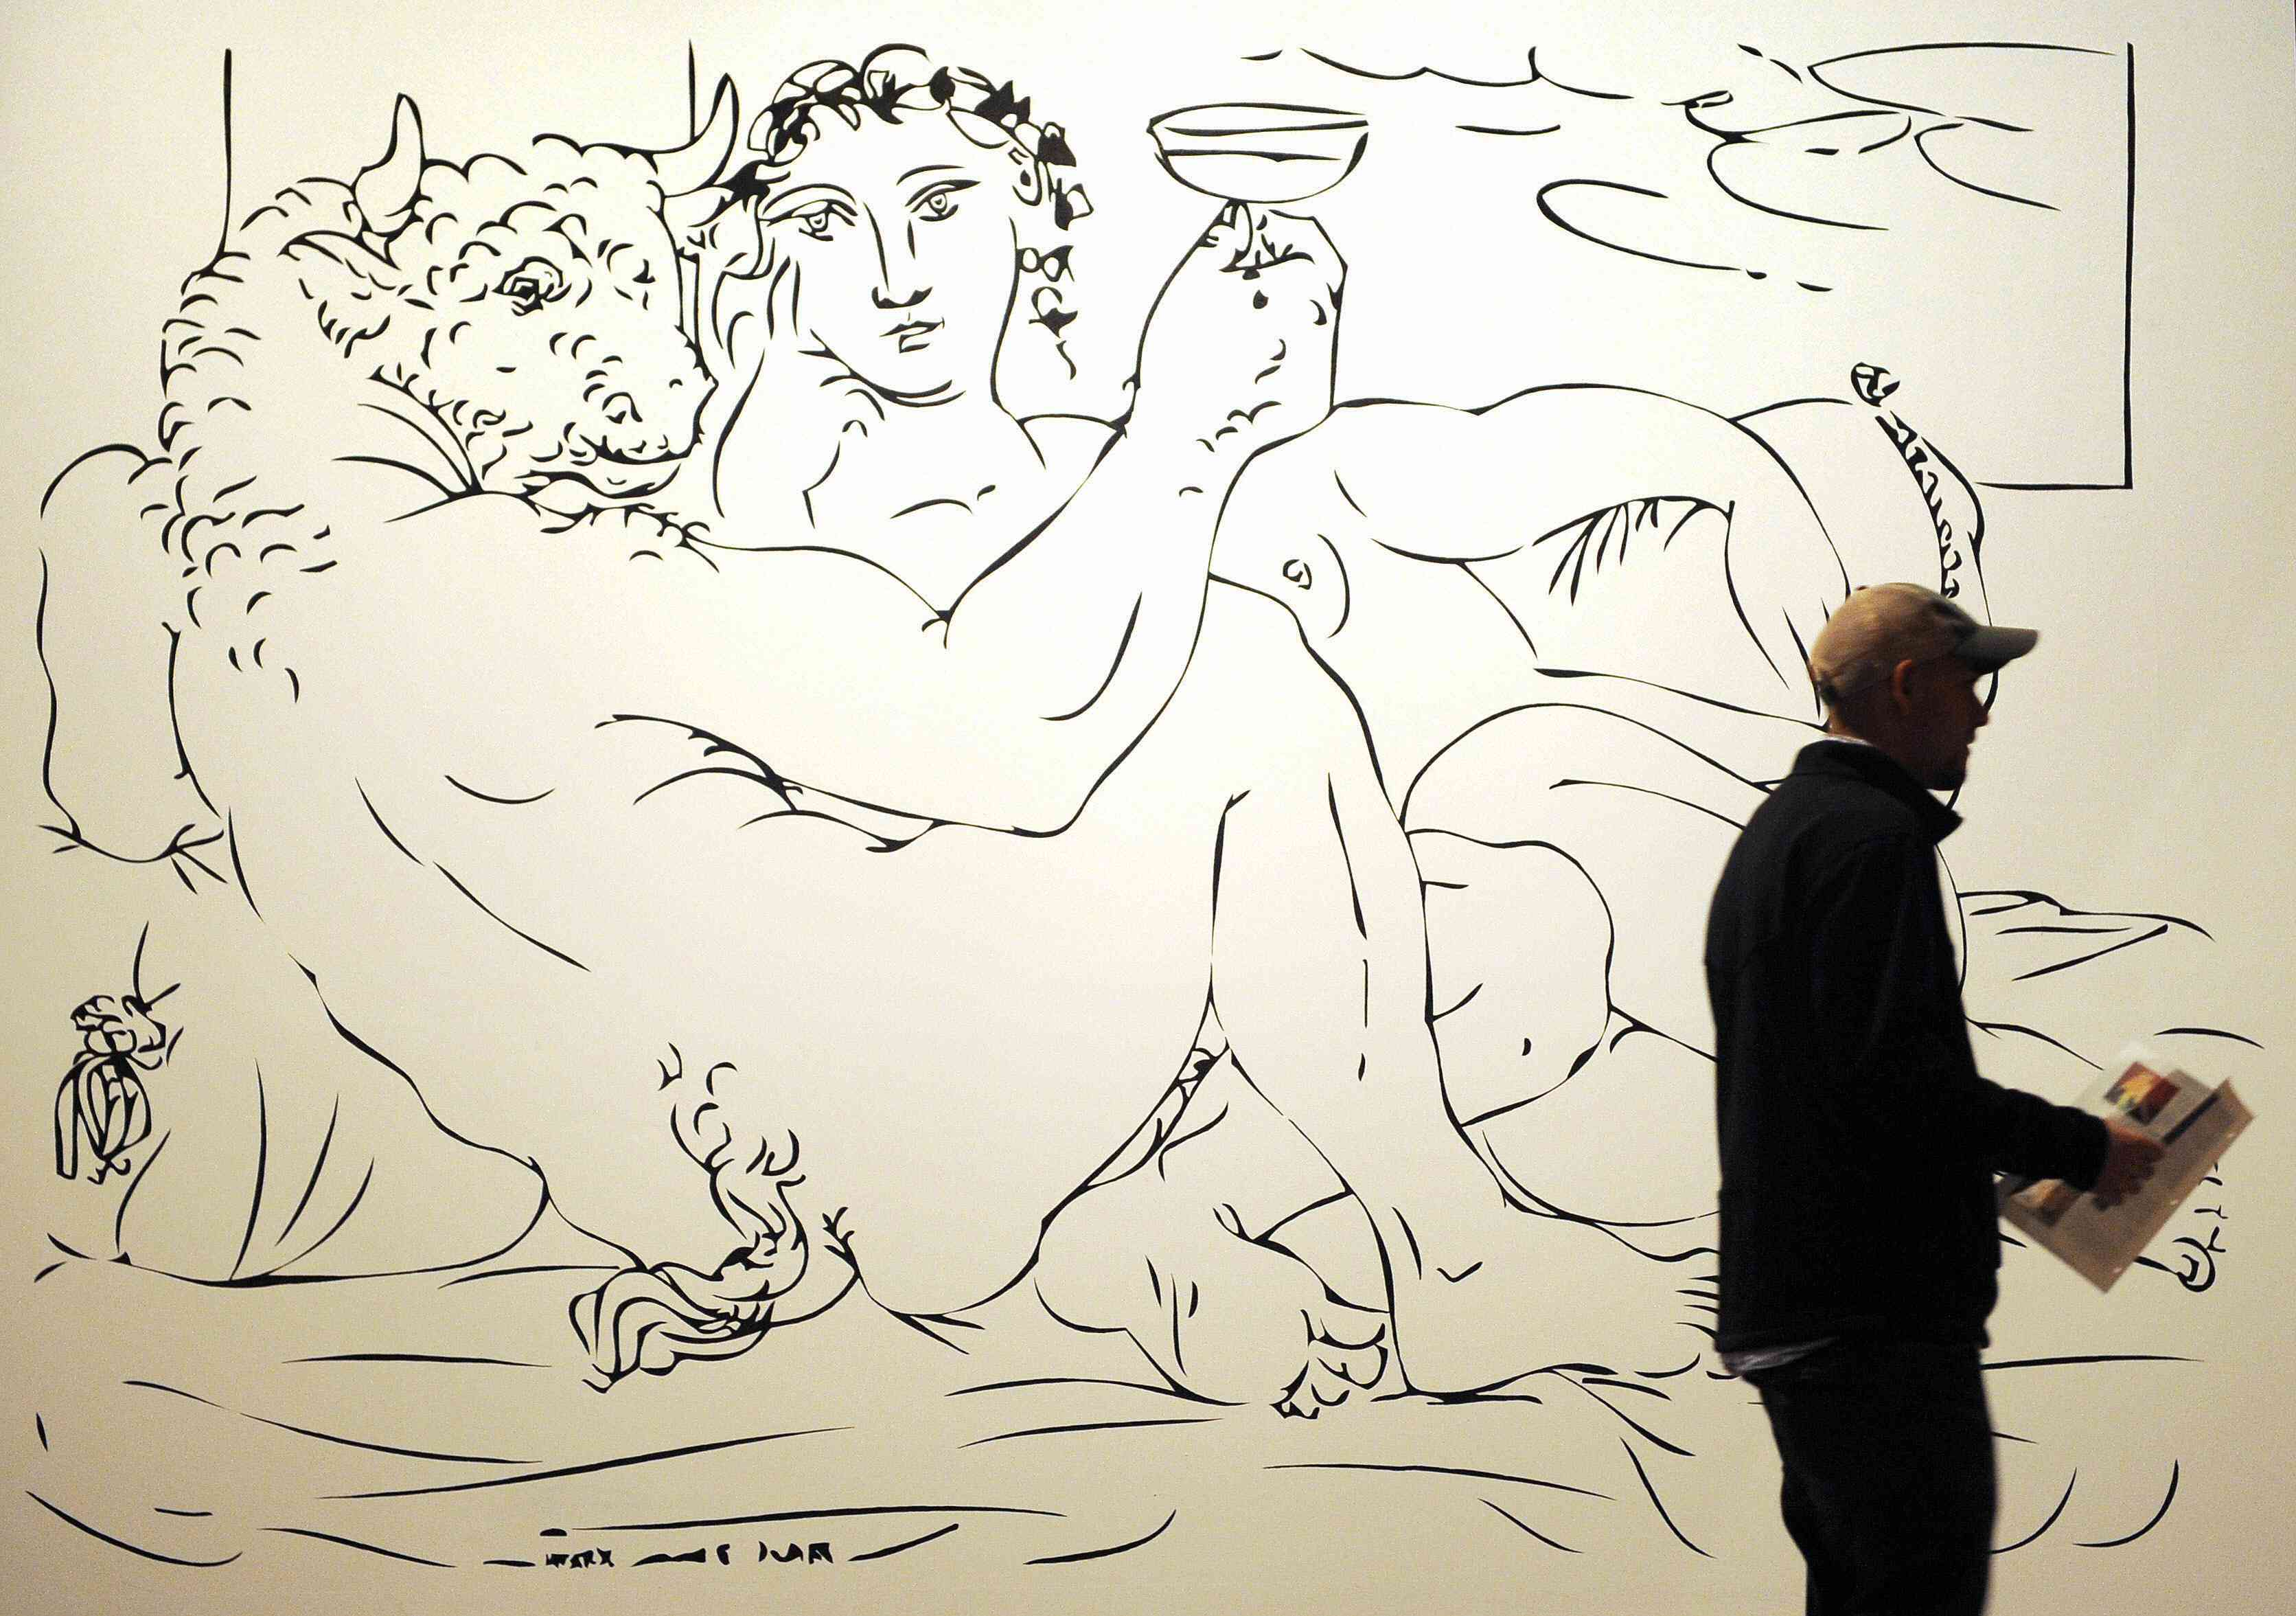 Picasso's Minotaur Drinking with a Girl